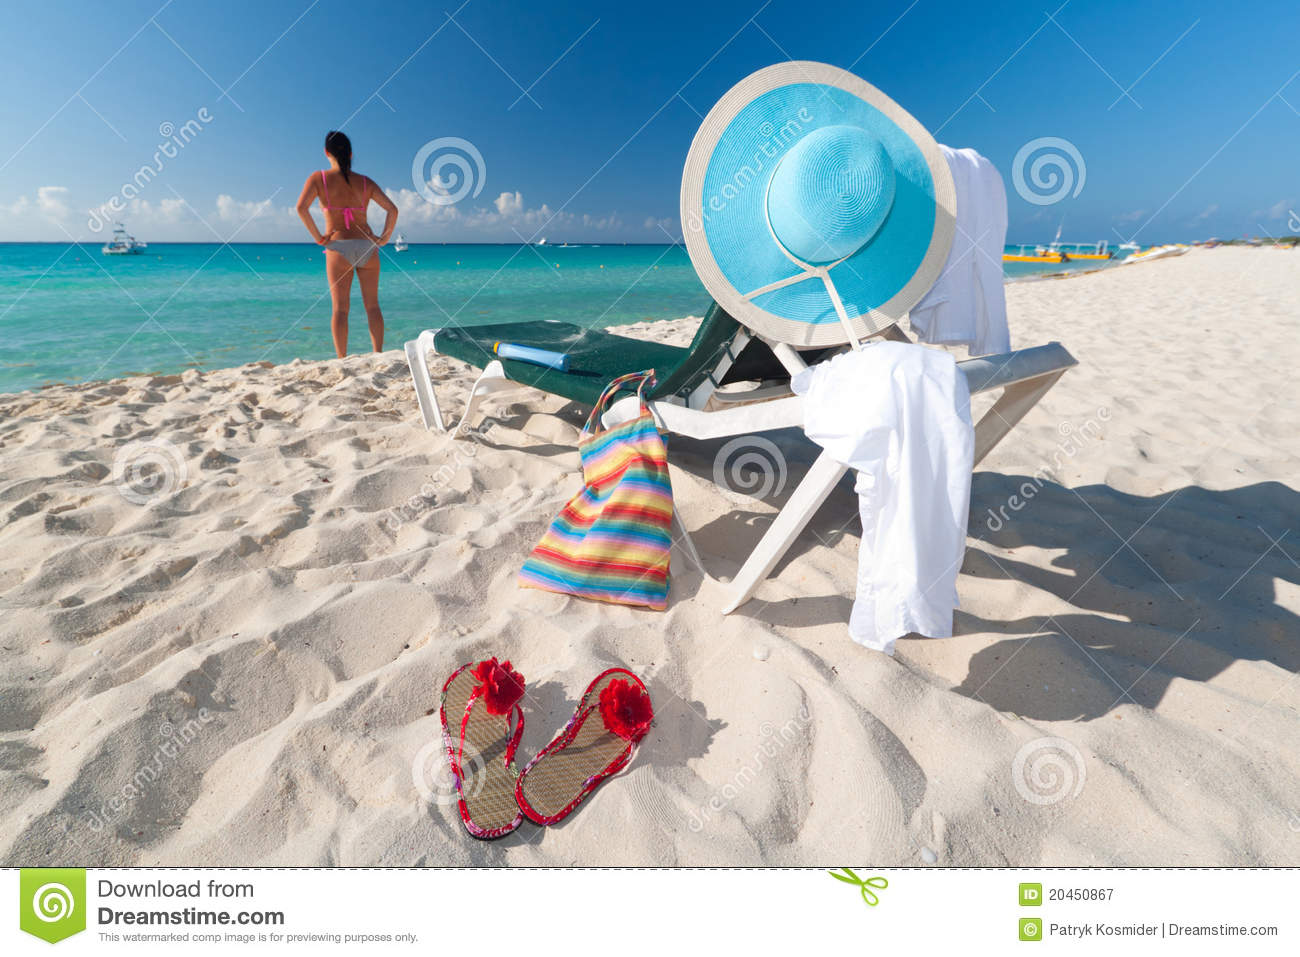 the concept of a perfect vacation Perfect vacation concept, pair of beach loungers on the deserted coast sea at sunrise pair beach loungers on the deserted coast sea at sunrise vacation concept.